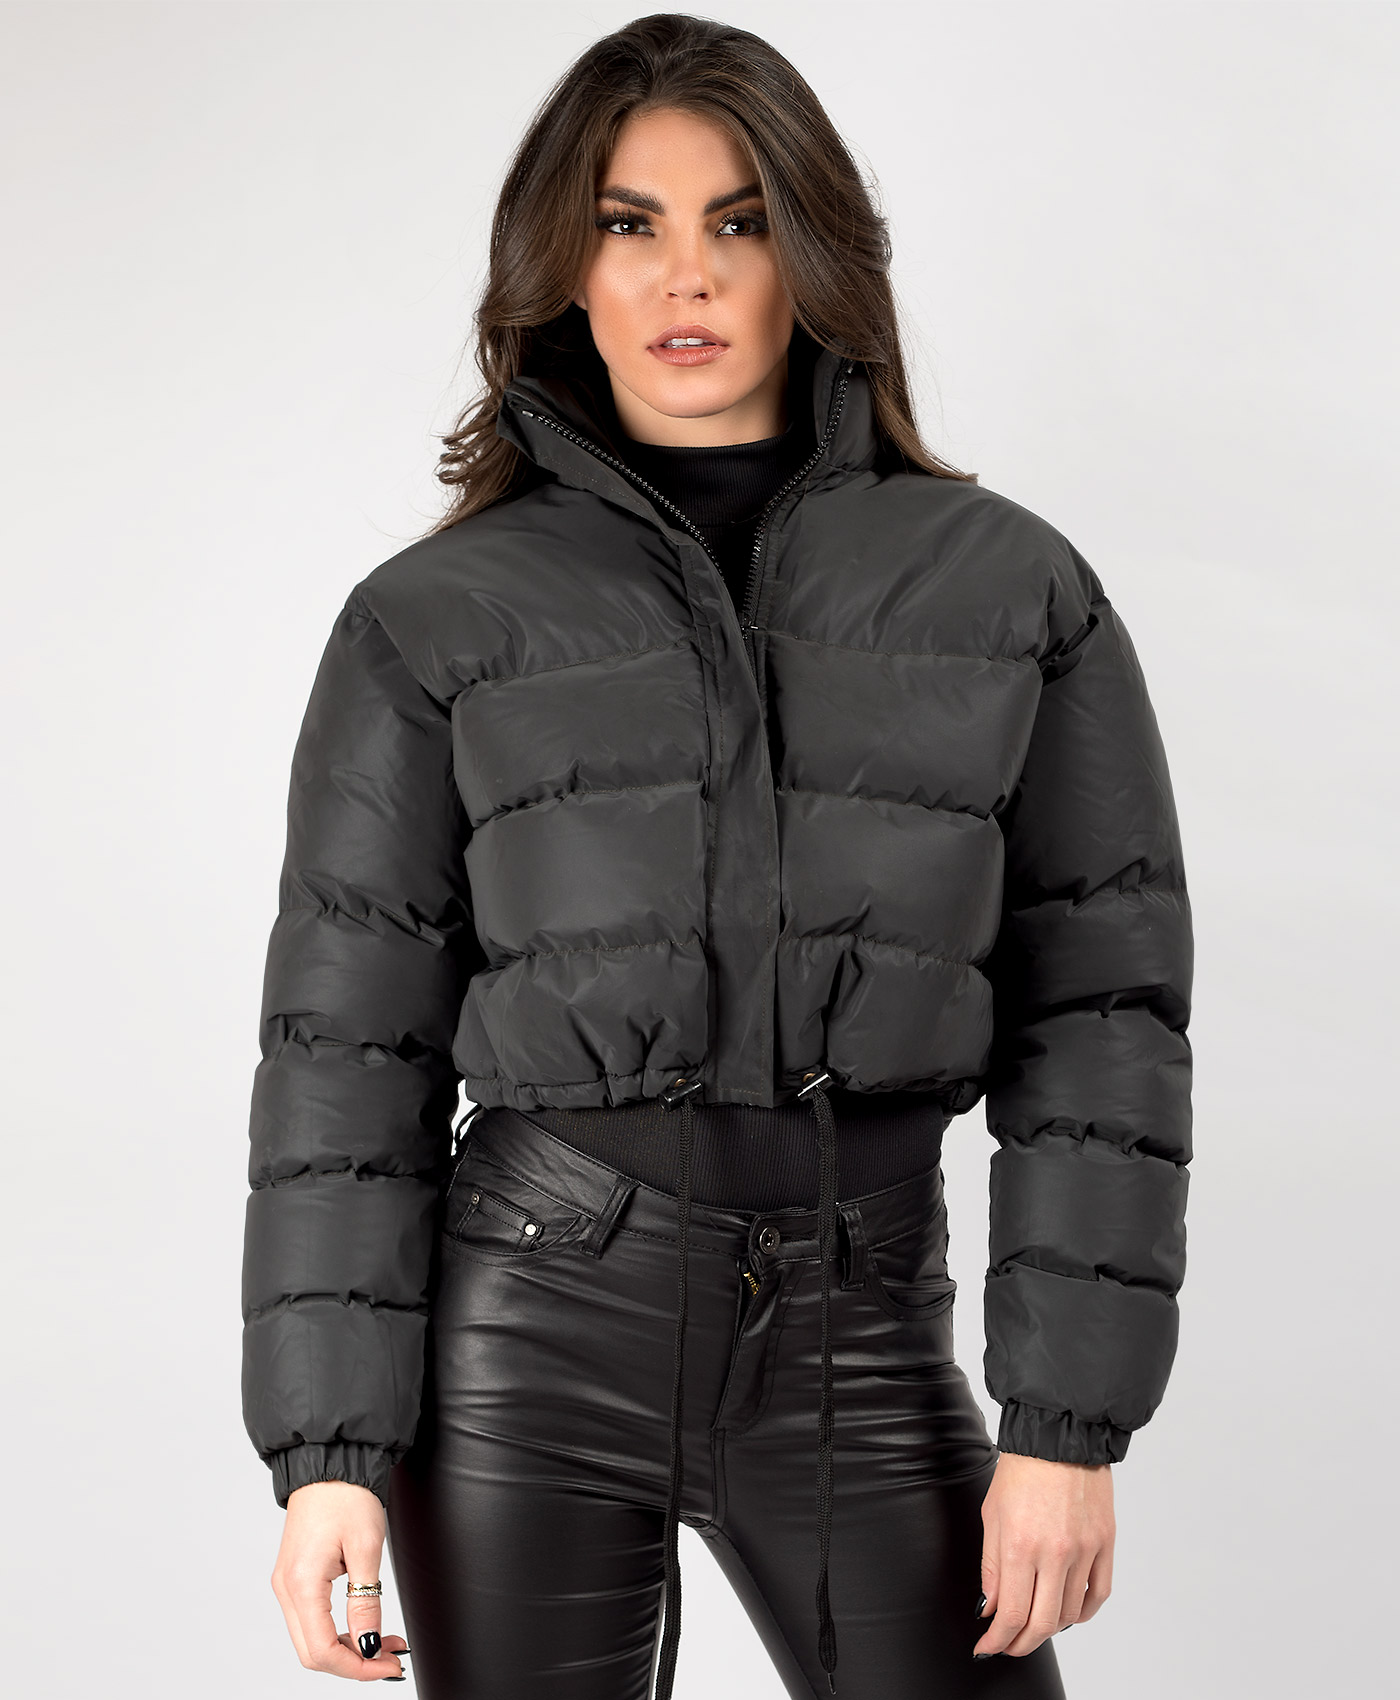 Womens-Reflective-Hi-Visibility-Thick-Puffer-Padded-Quilted-Cropped-Jacket-Coat Indexbild 14